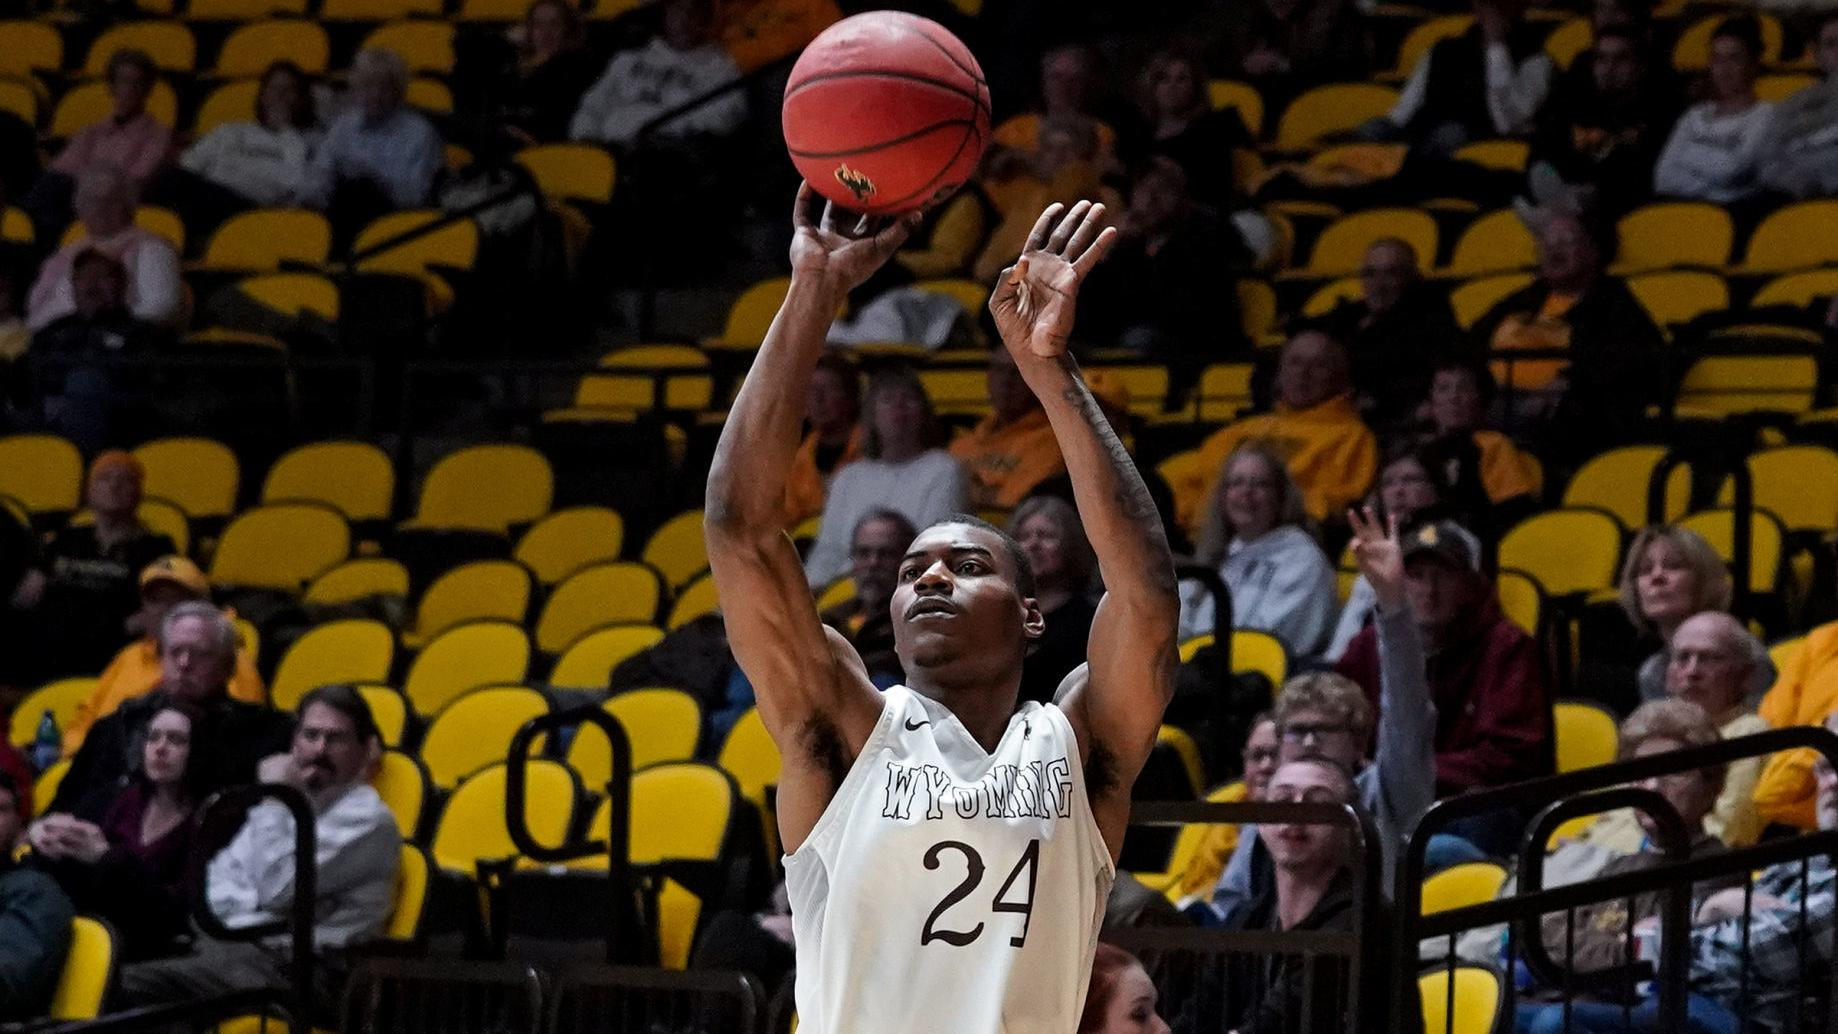 With Alan Herndon sick, Wyoming men's basketball runs thin inside in New Mexico loss